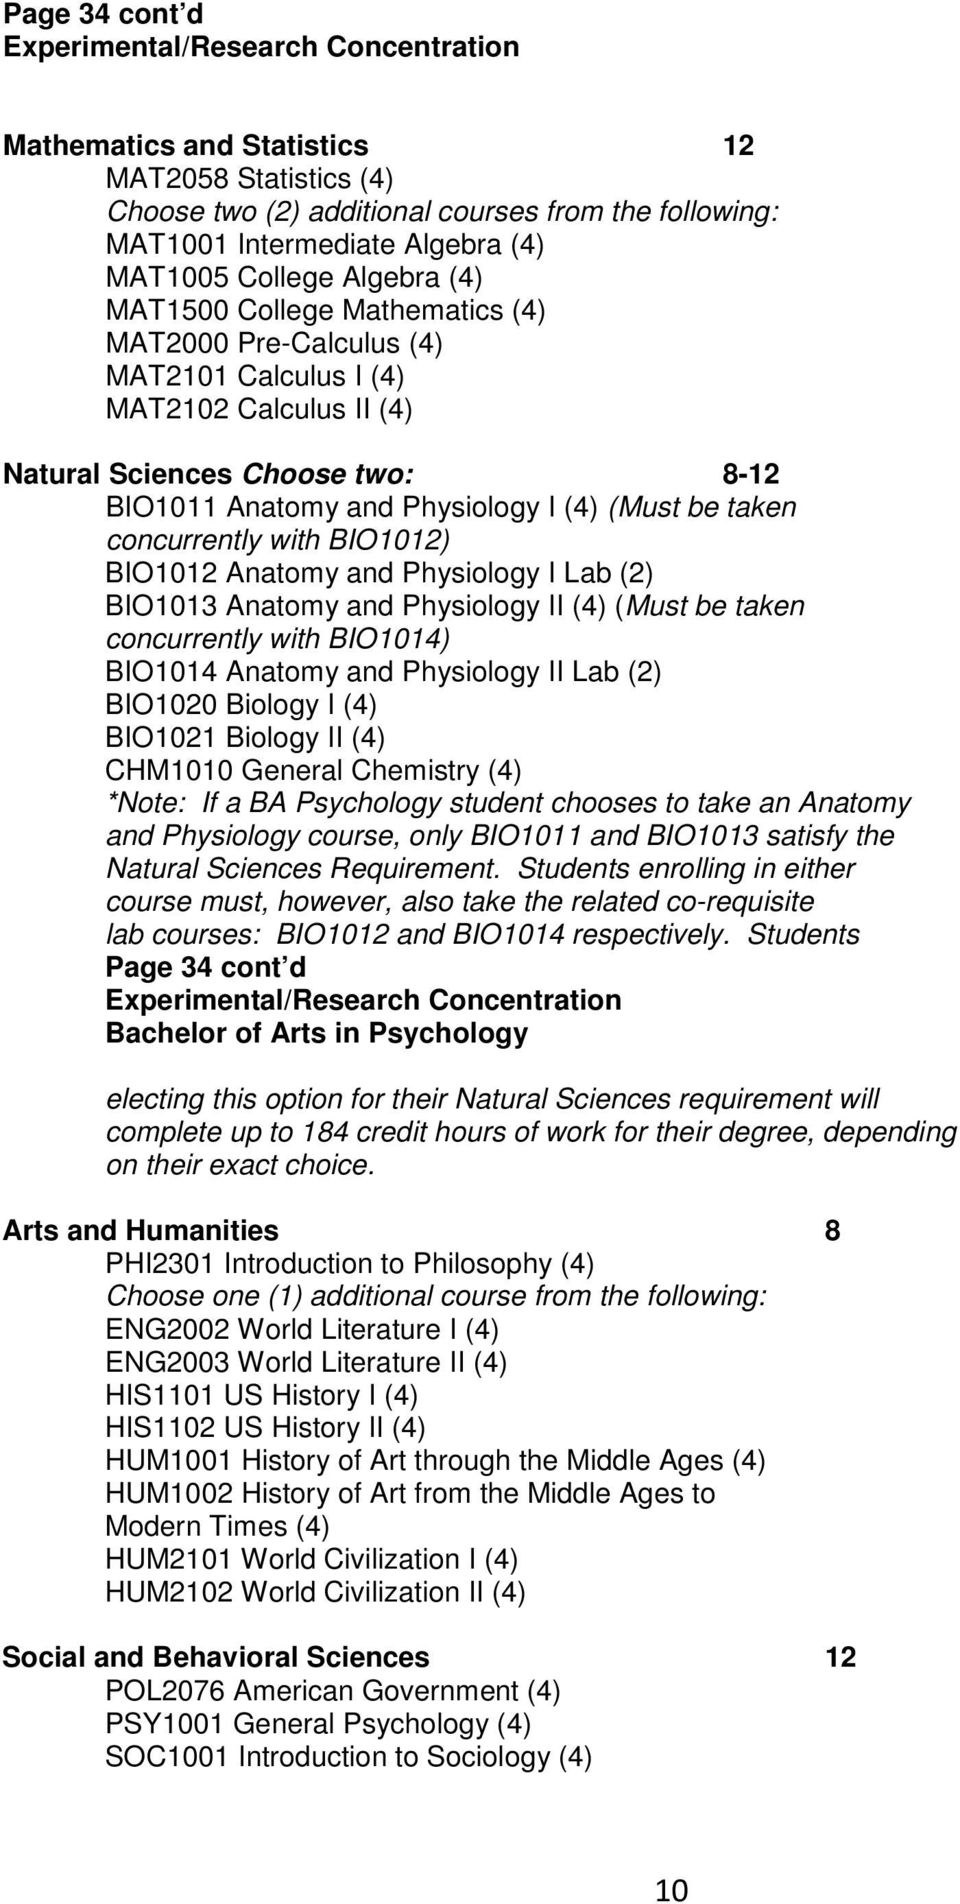 (Must be taken concurrently with BIO1012) BIO1012 Anatomy and Physiology I Lab (2) BIO1013 Anatomy and Physiology II (4) (Must be taken concurrently with BIO1014) BIO1014 Anatomy and Physiology II